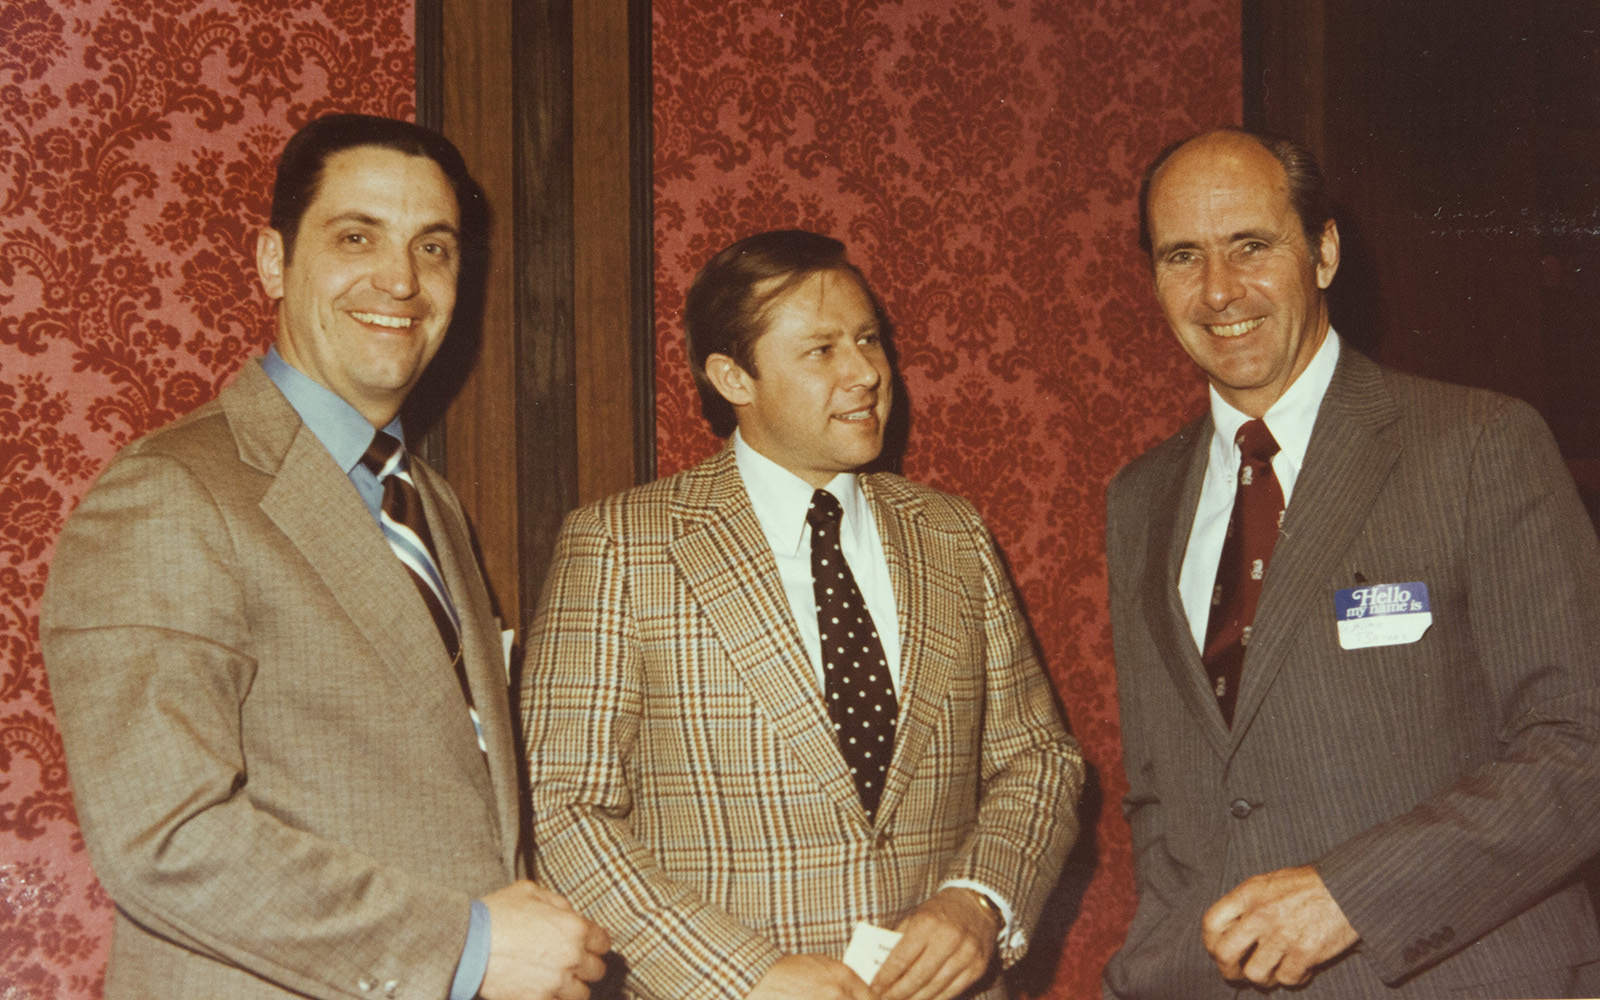 Ronald Patten, Robert Steele, and Wallace Barnes 1977 (UConn School of Business)